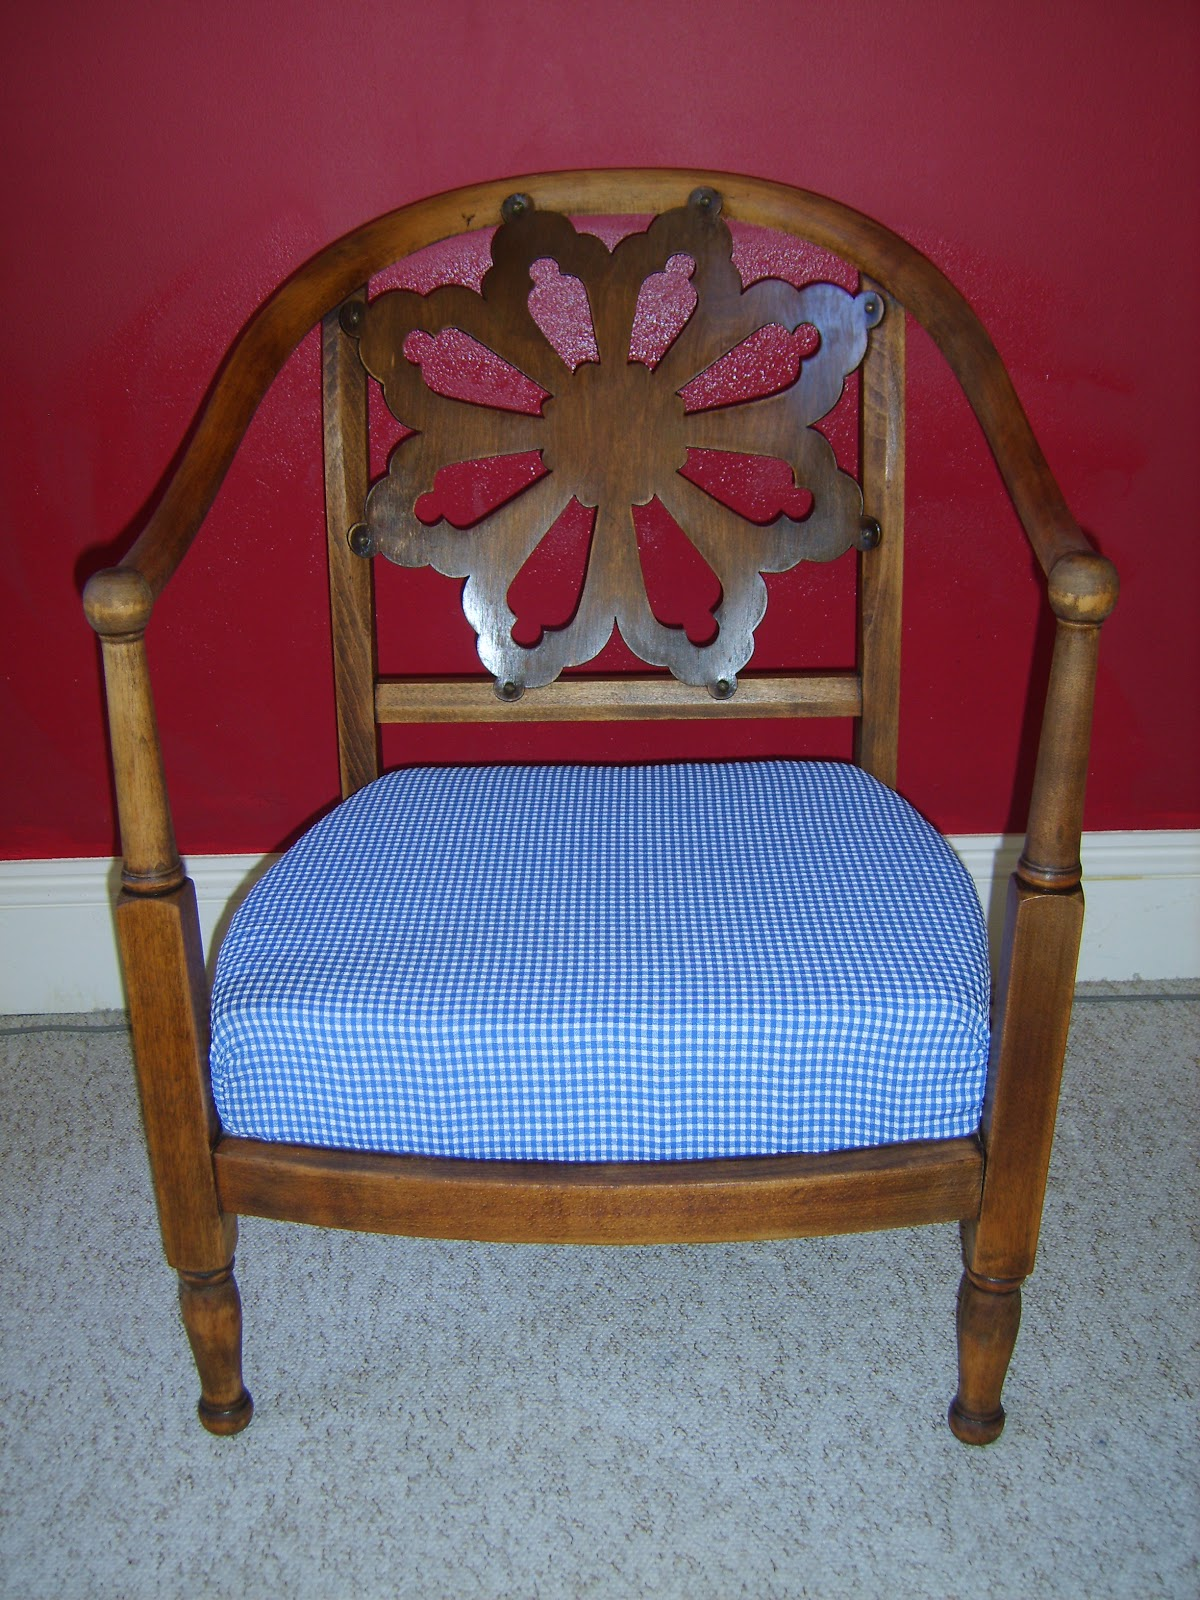 Hold Fast Co.: Vintage Bedroom/Nursing Chair